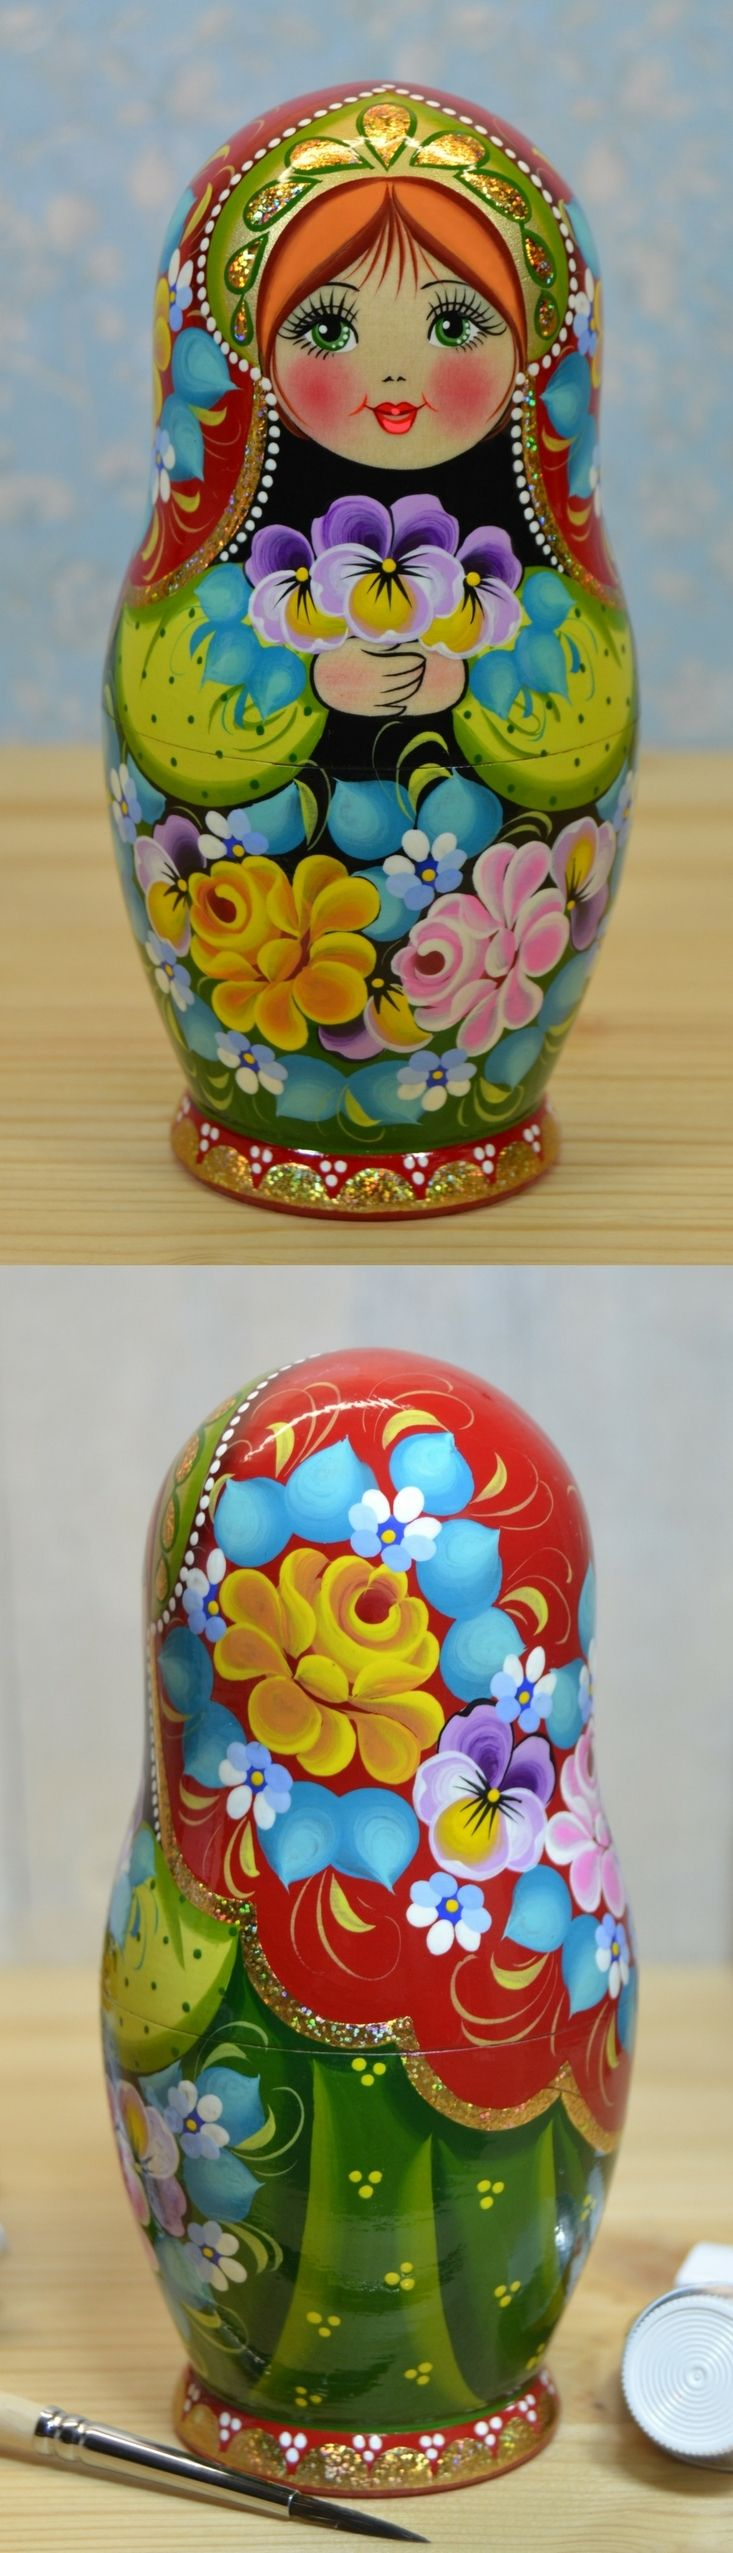 Wooden nesting doll in floral costume, made by artist Nadezhda Tihonovich. Find more lovely russian matryoshka dolls at: www.bestrussiandolls.etsy.com